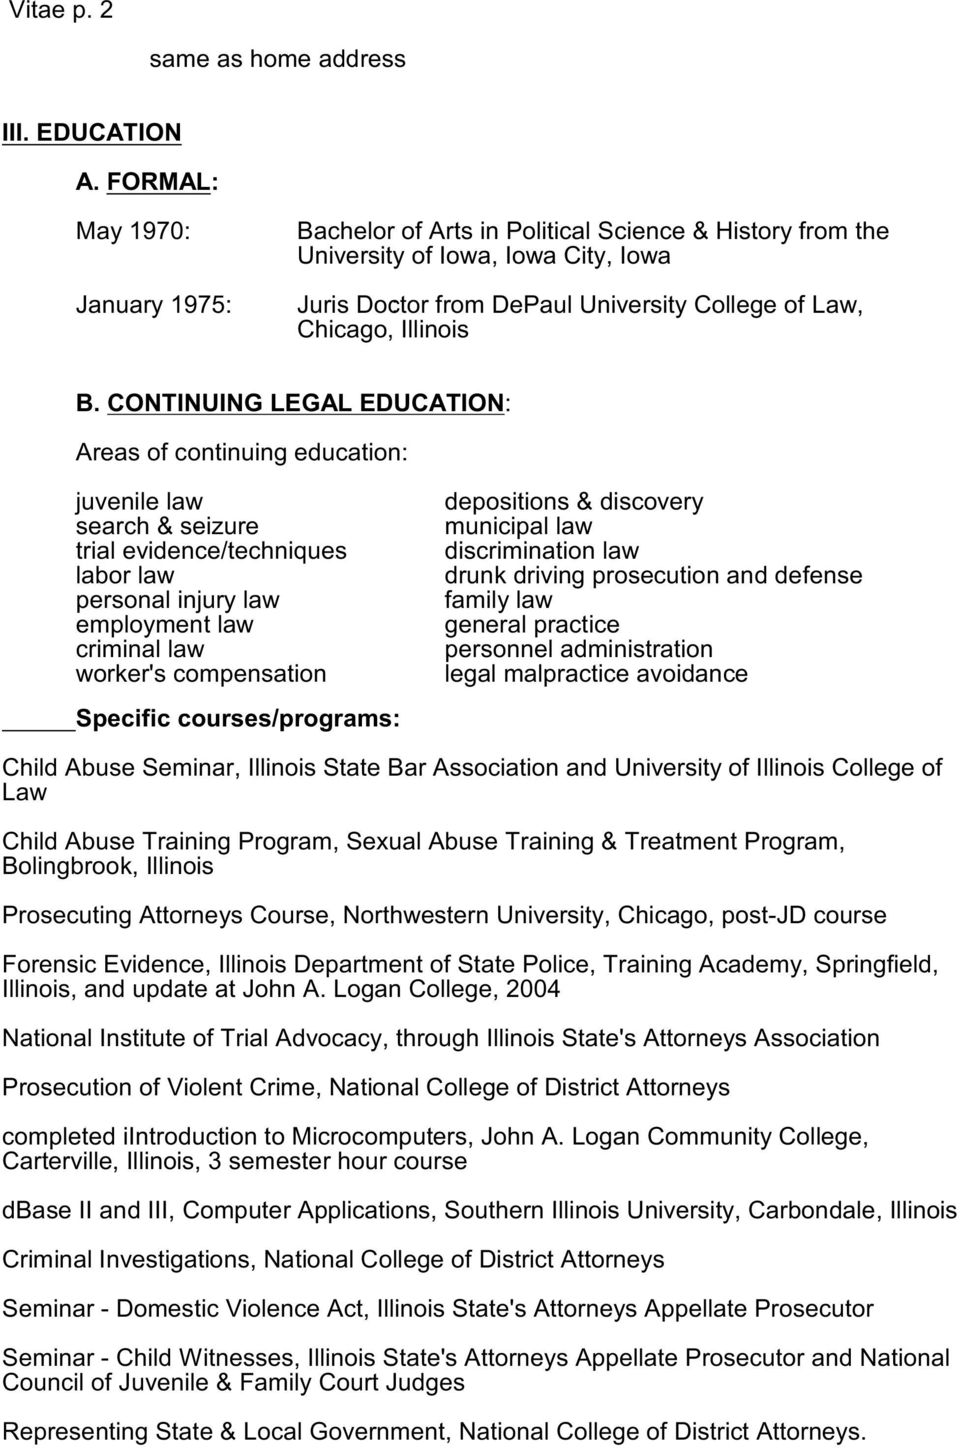 B. CONTINUING LEGAL EDUCATION: Areas of continuing education: juvenile law search & seizure trial evidence/techniques labor law personal injury law employment law criminal law worker's compensation